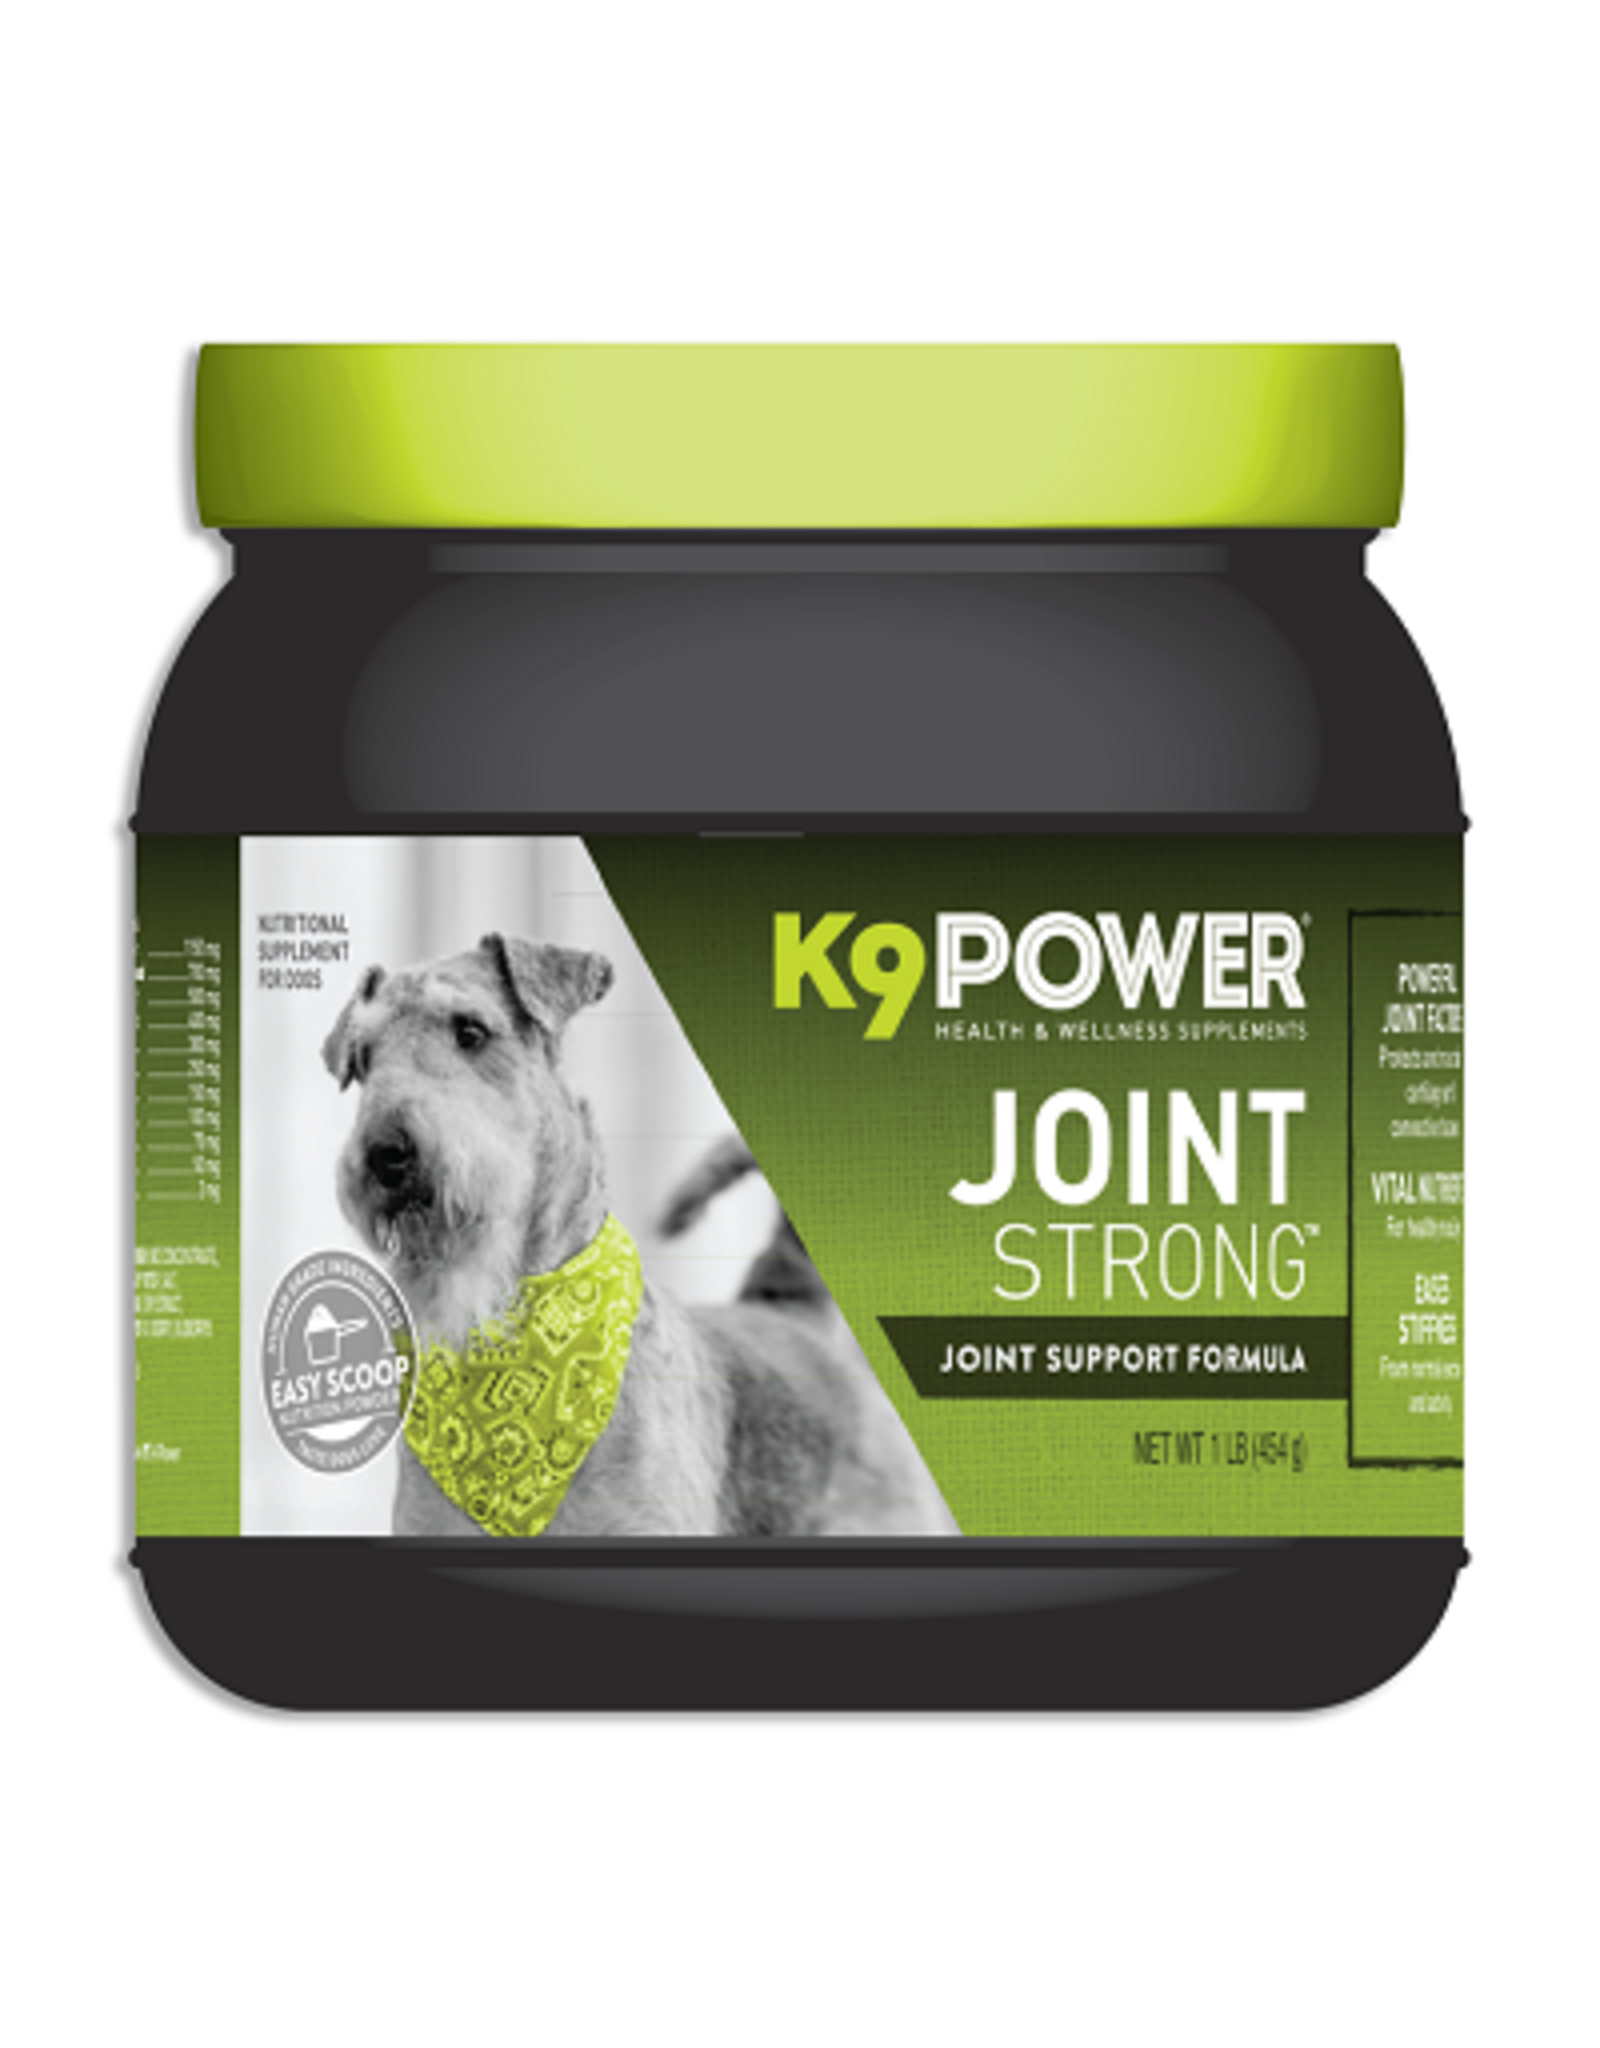 K9 Power K9 POWER Joint Strong 1#